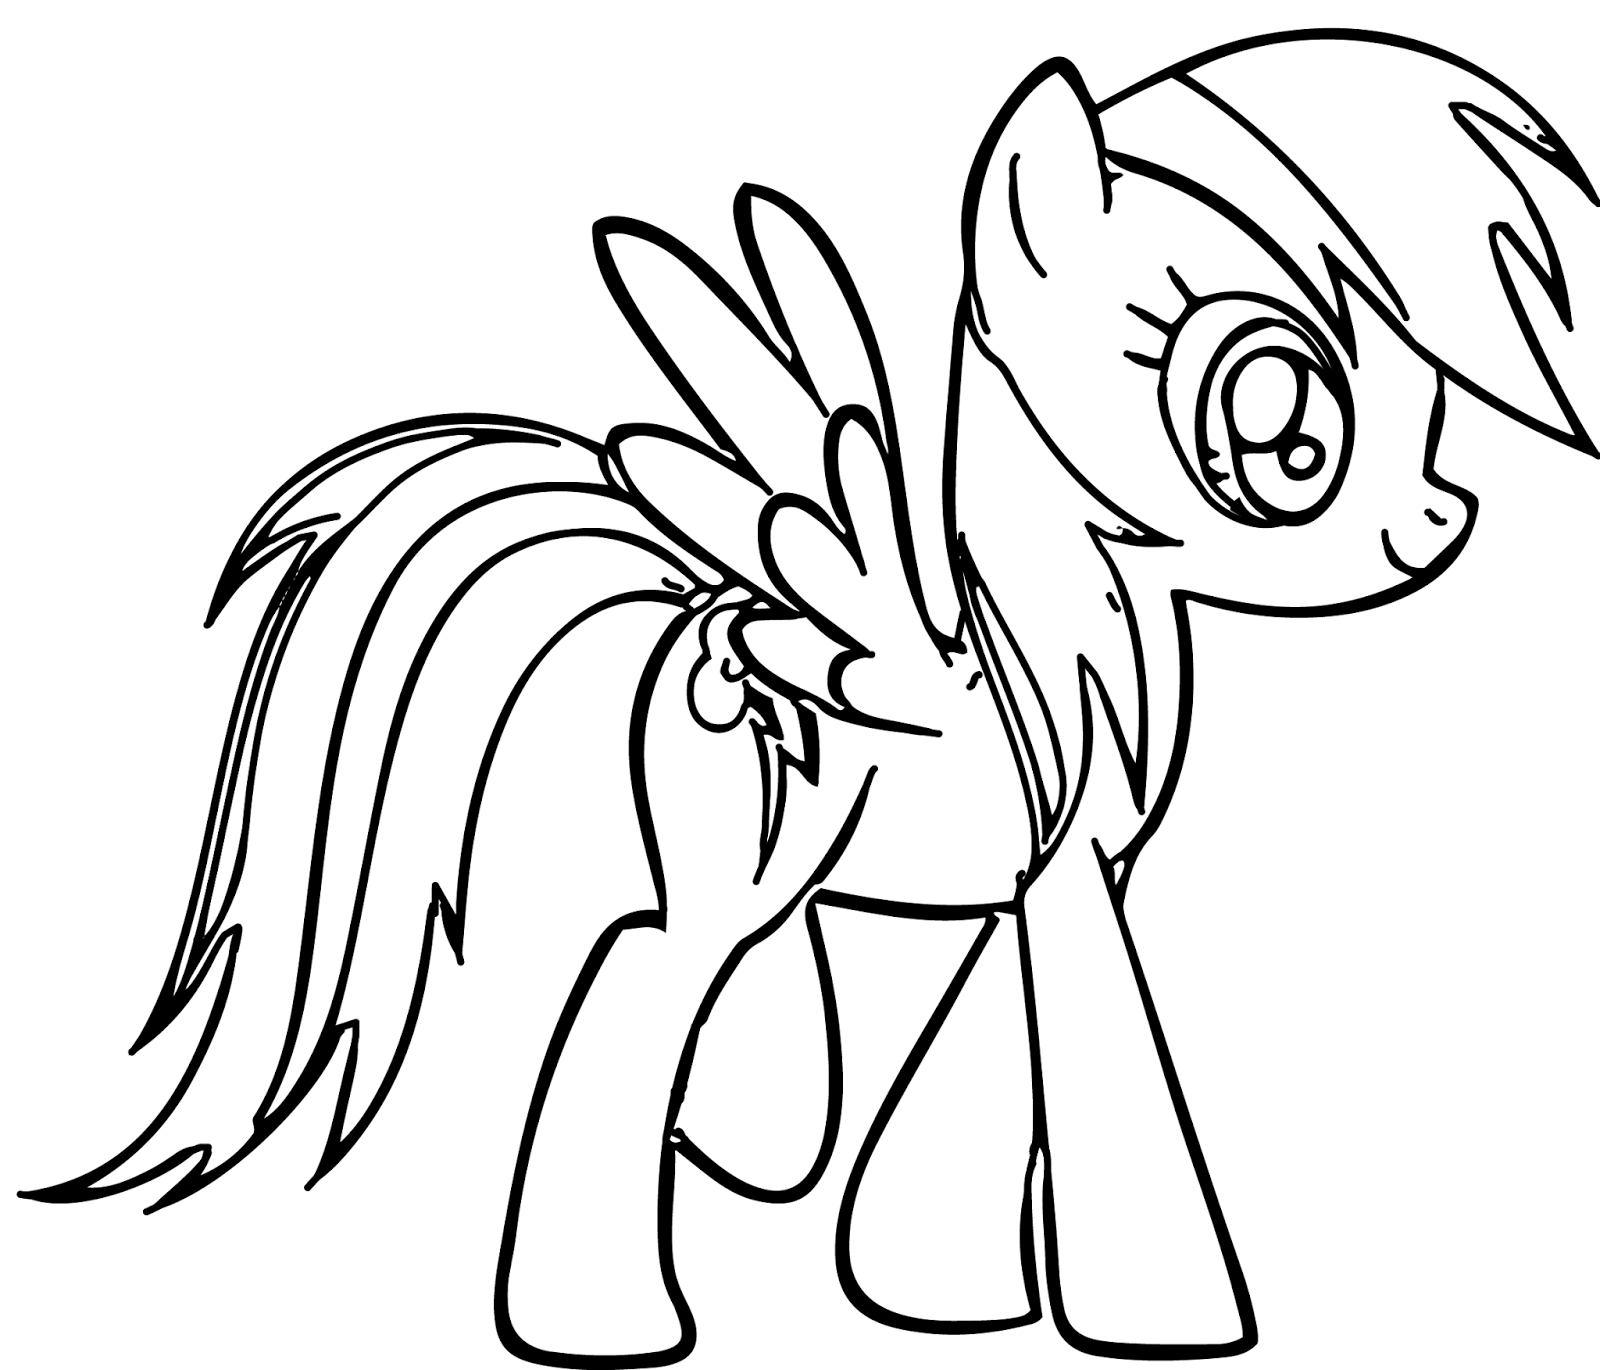 11 Pics of Heart Coloring Pages Rainbow Dash - Rainbow Dash ...